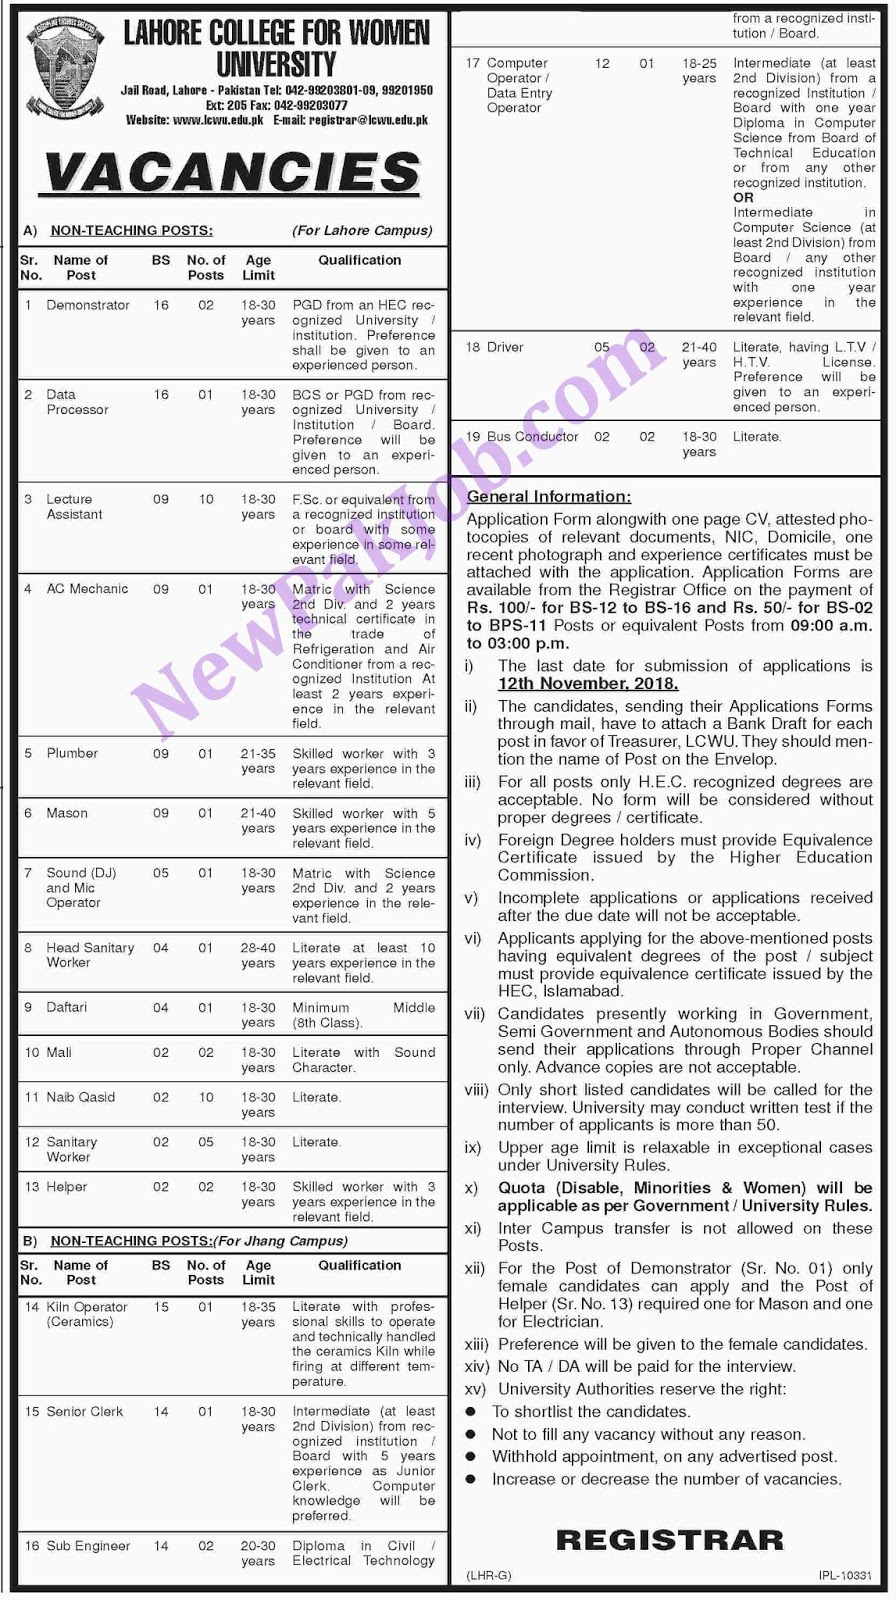 Lahore College for Women University Last Date 12 Nov 18